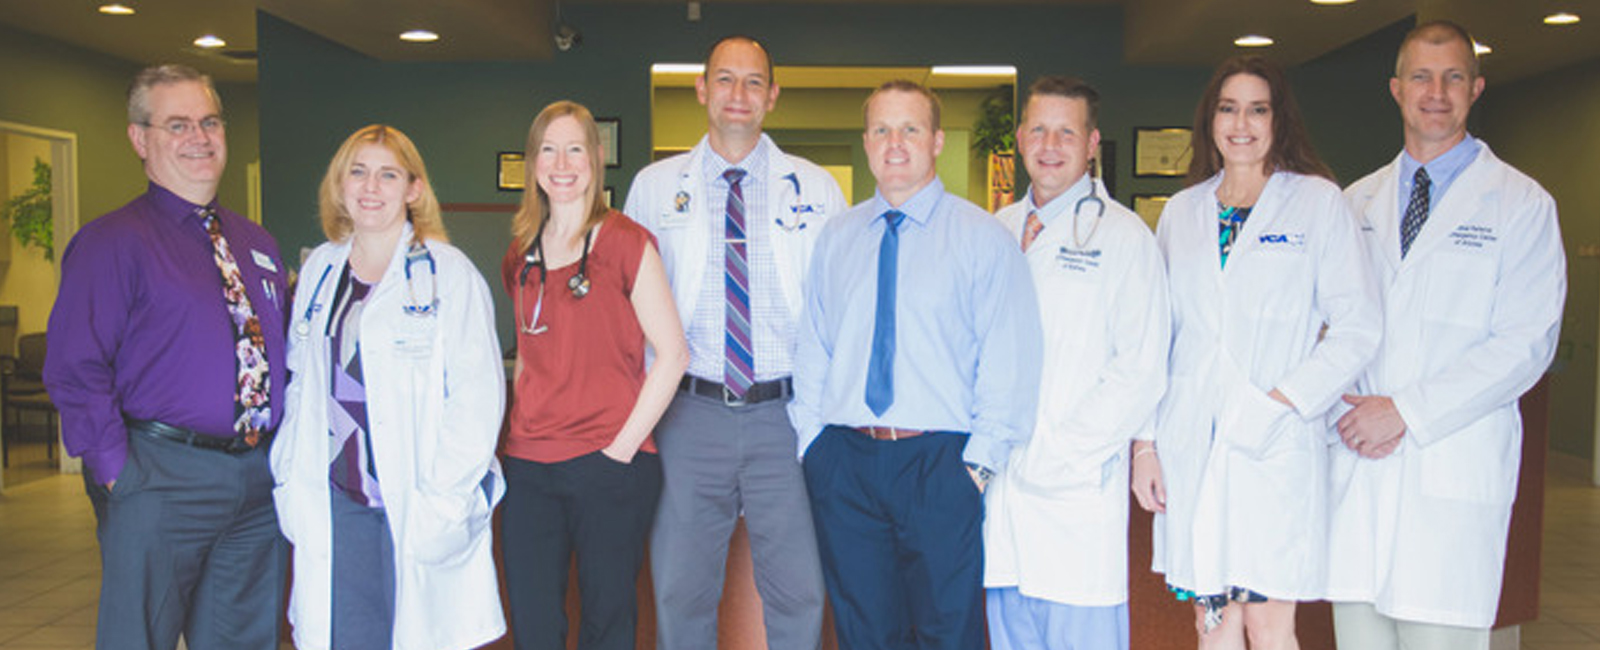 Homepage Team Picture of VCA Animal Referral Arizona Animal Hospital